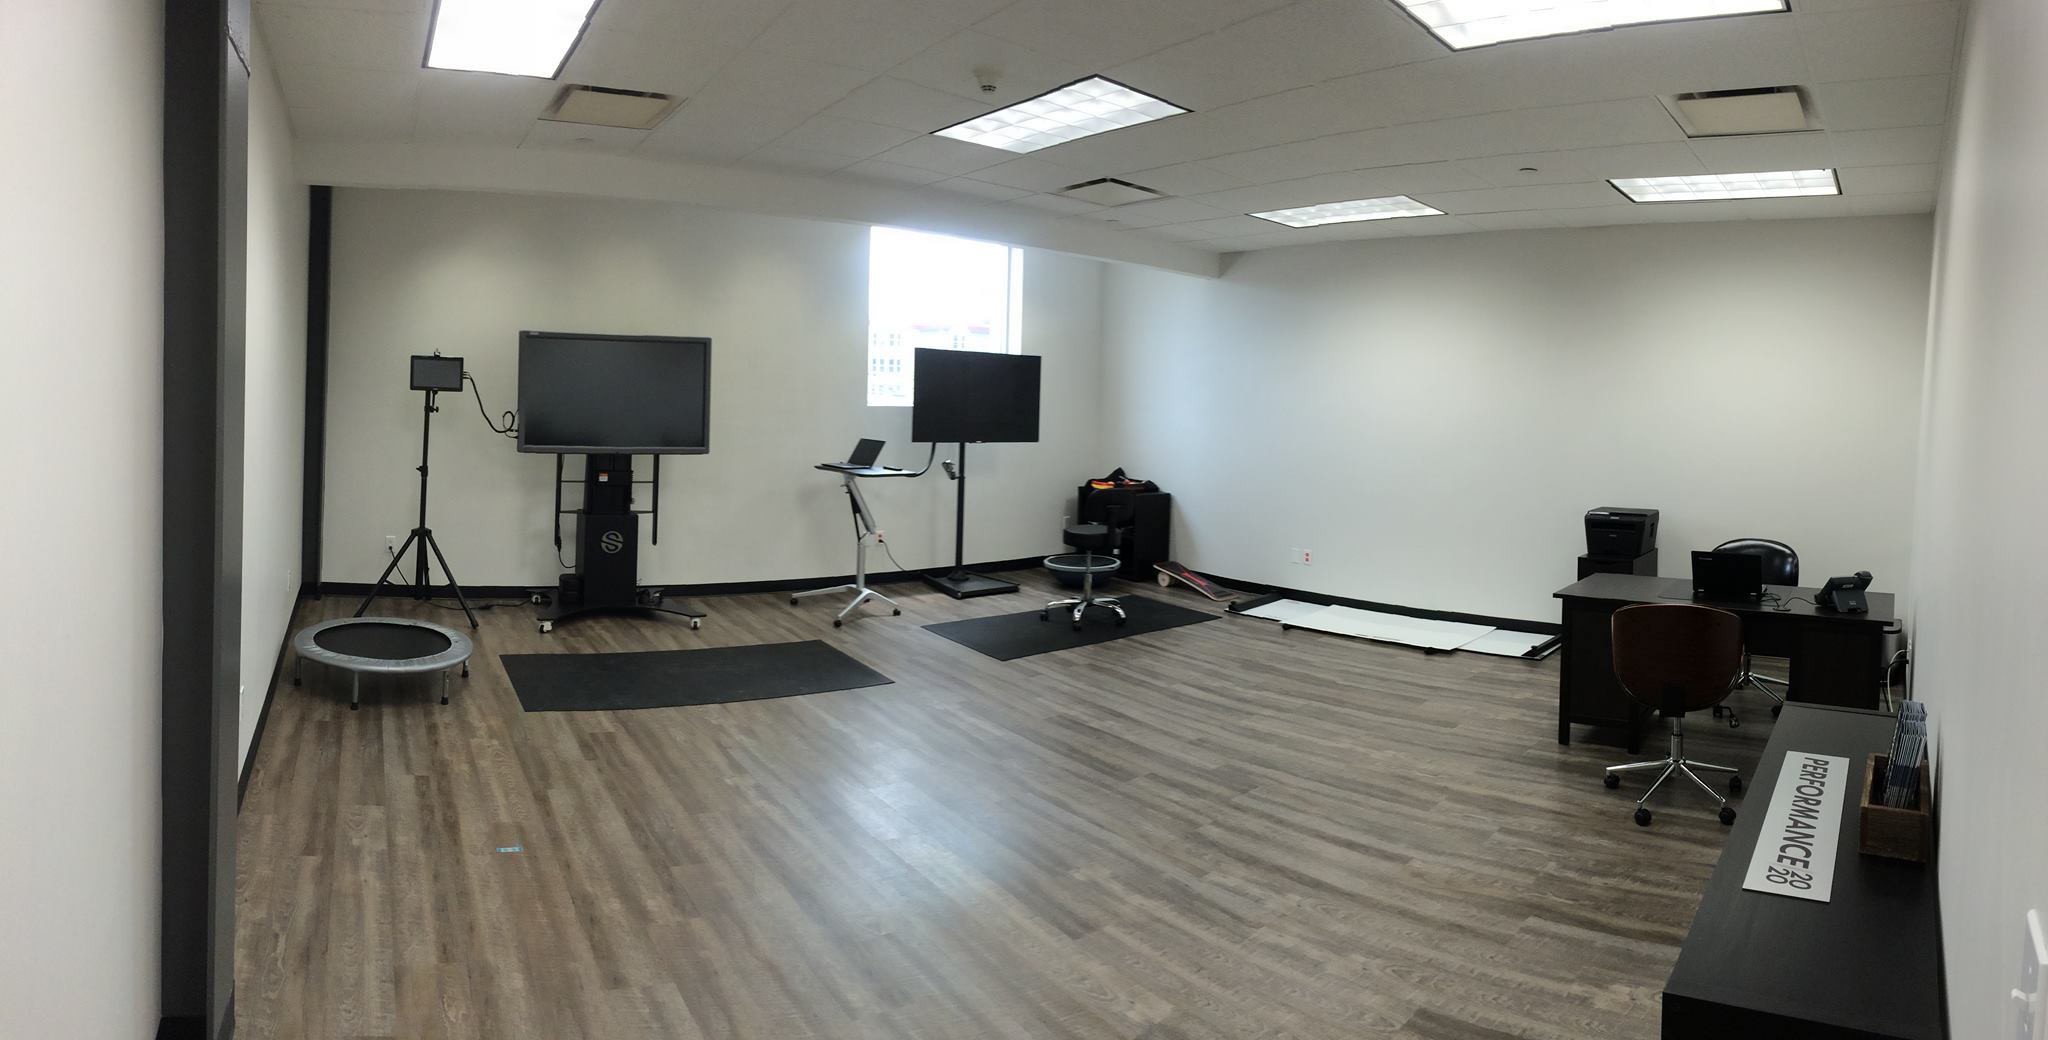 hardwood flooring norwalk ct of 8 tips to add sports and performance vision to your practice page 3 within figure 6 a quiet moment at performance 20 20 before the athletes train keeping a separate space for sports vision training is great but practitioners are